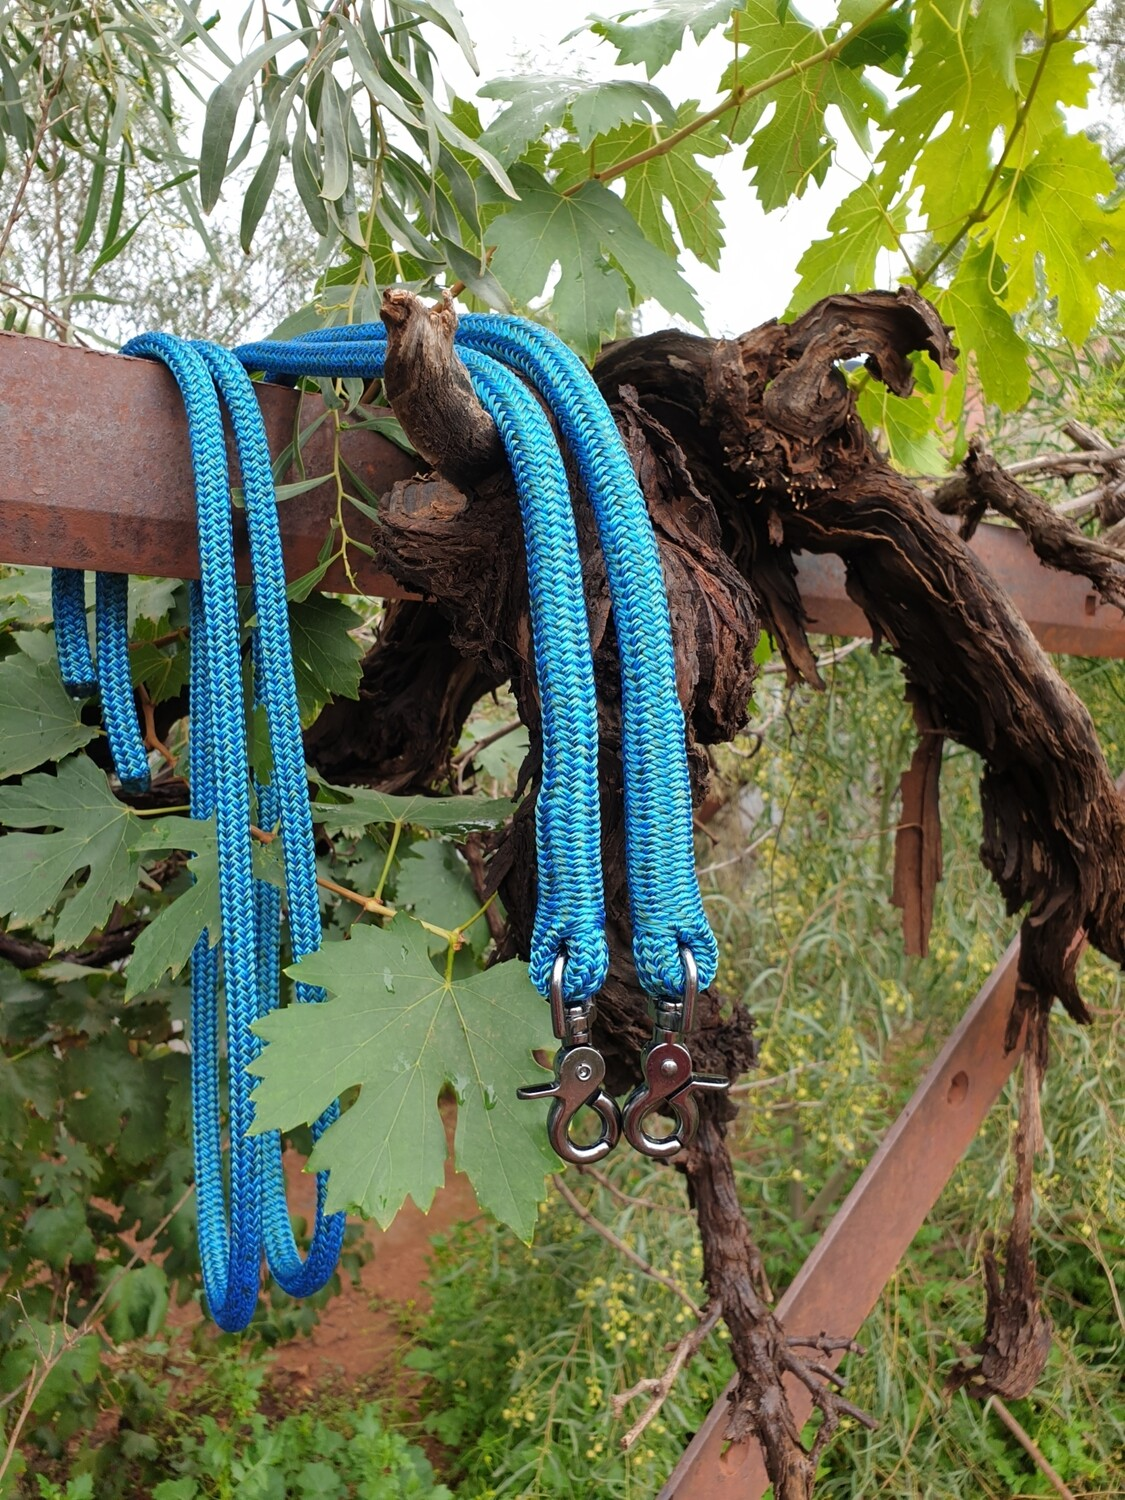 Mottled Blue/Green Rope Reins with Trigger Clips